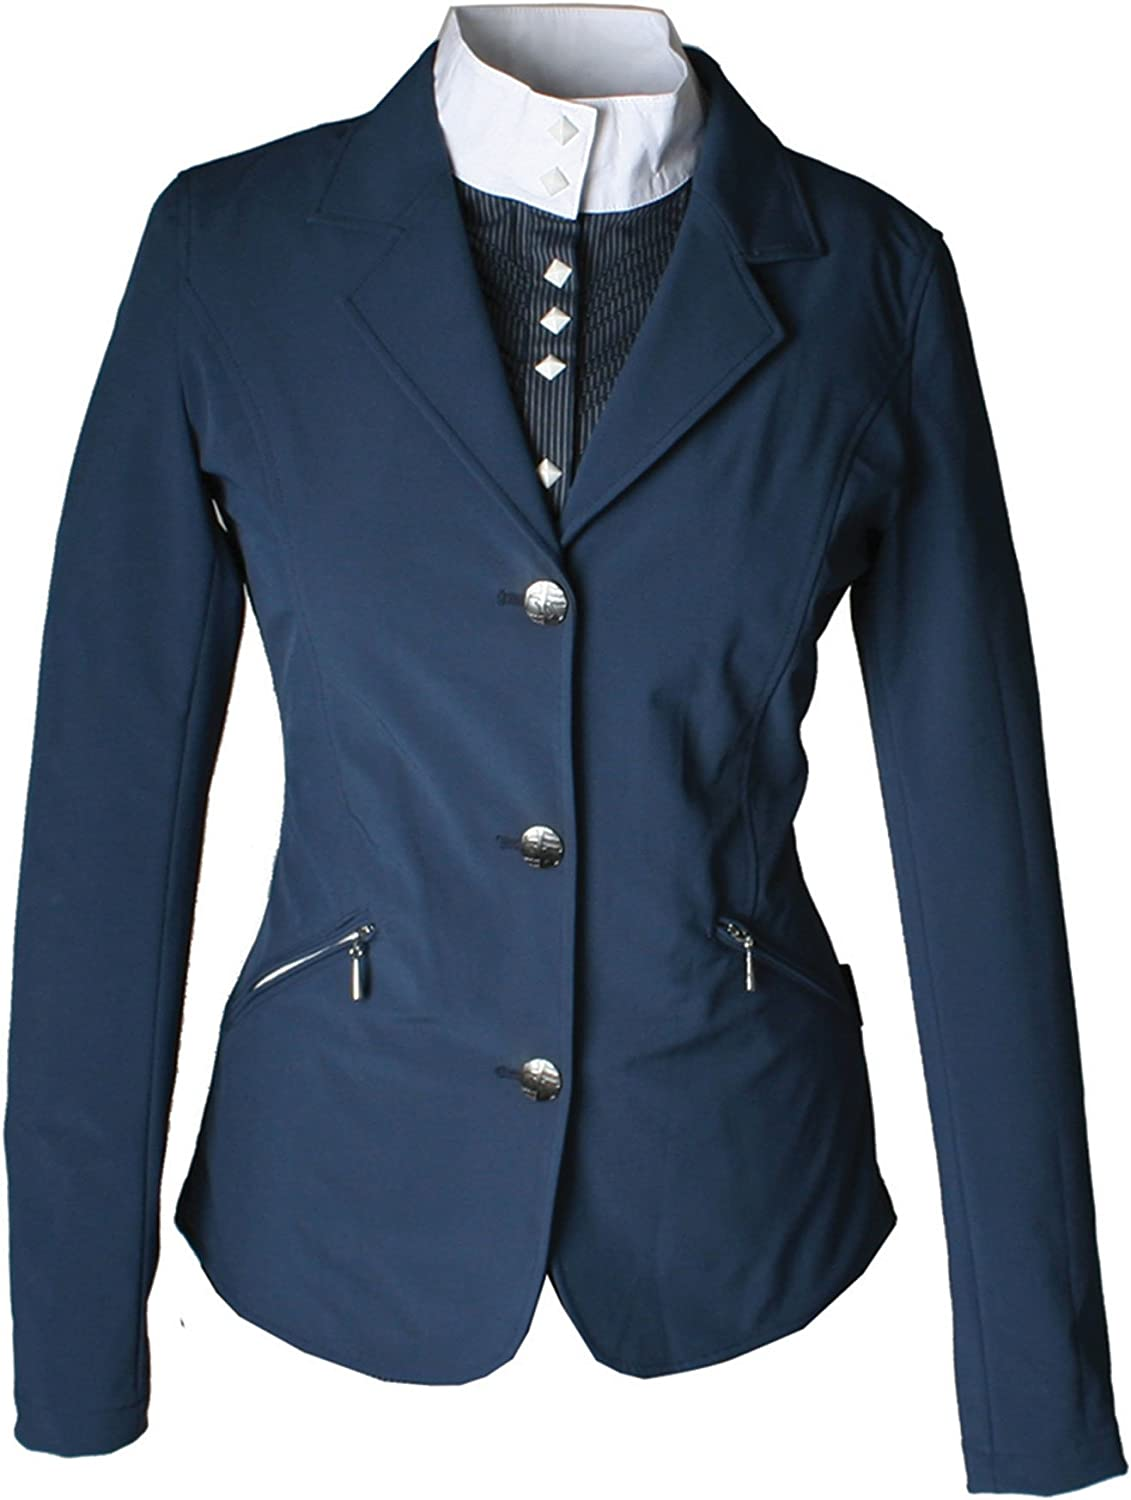 Navy Navy new Horseware Kids Competition Jacket